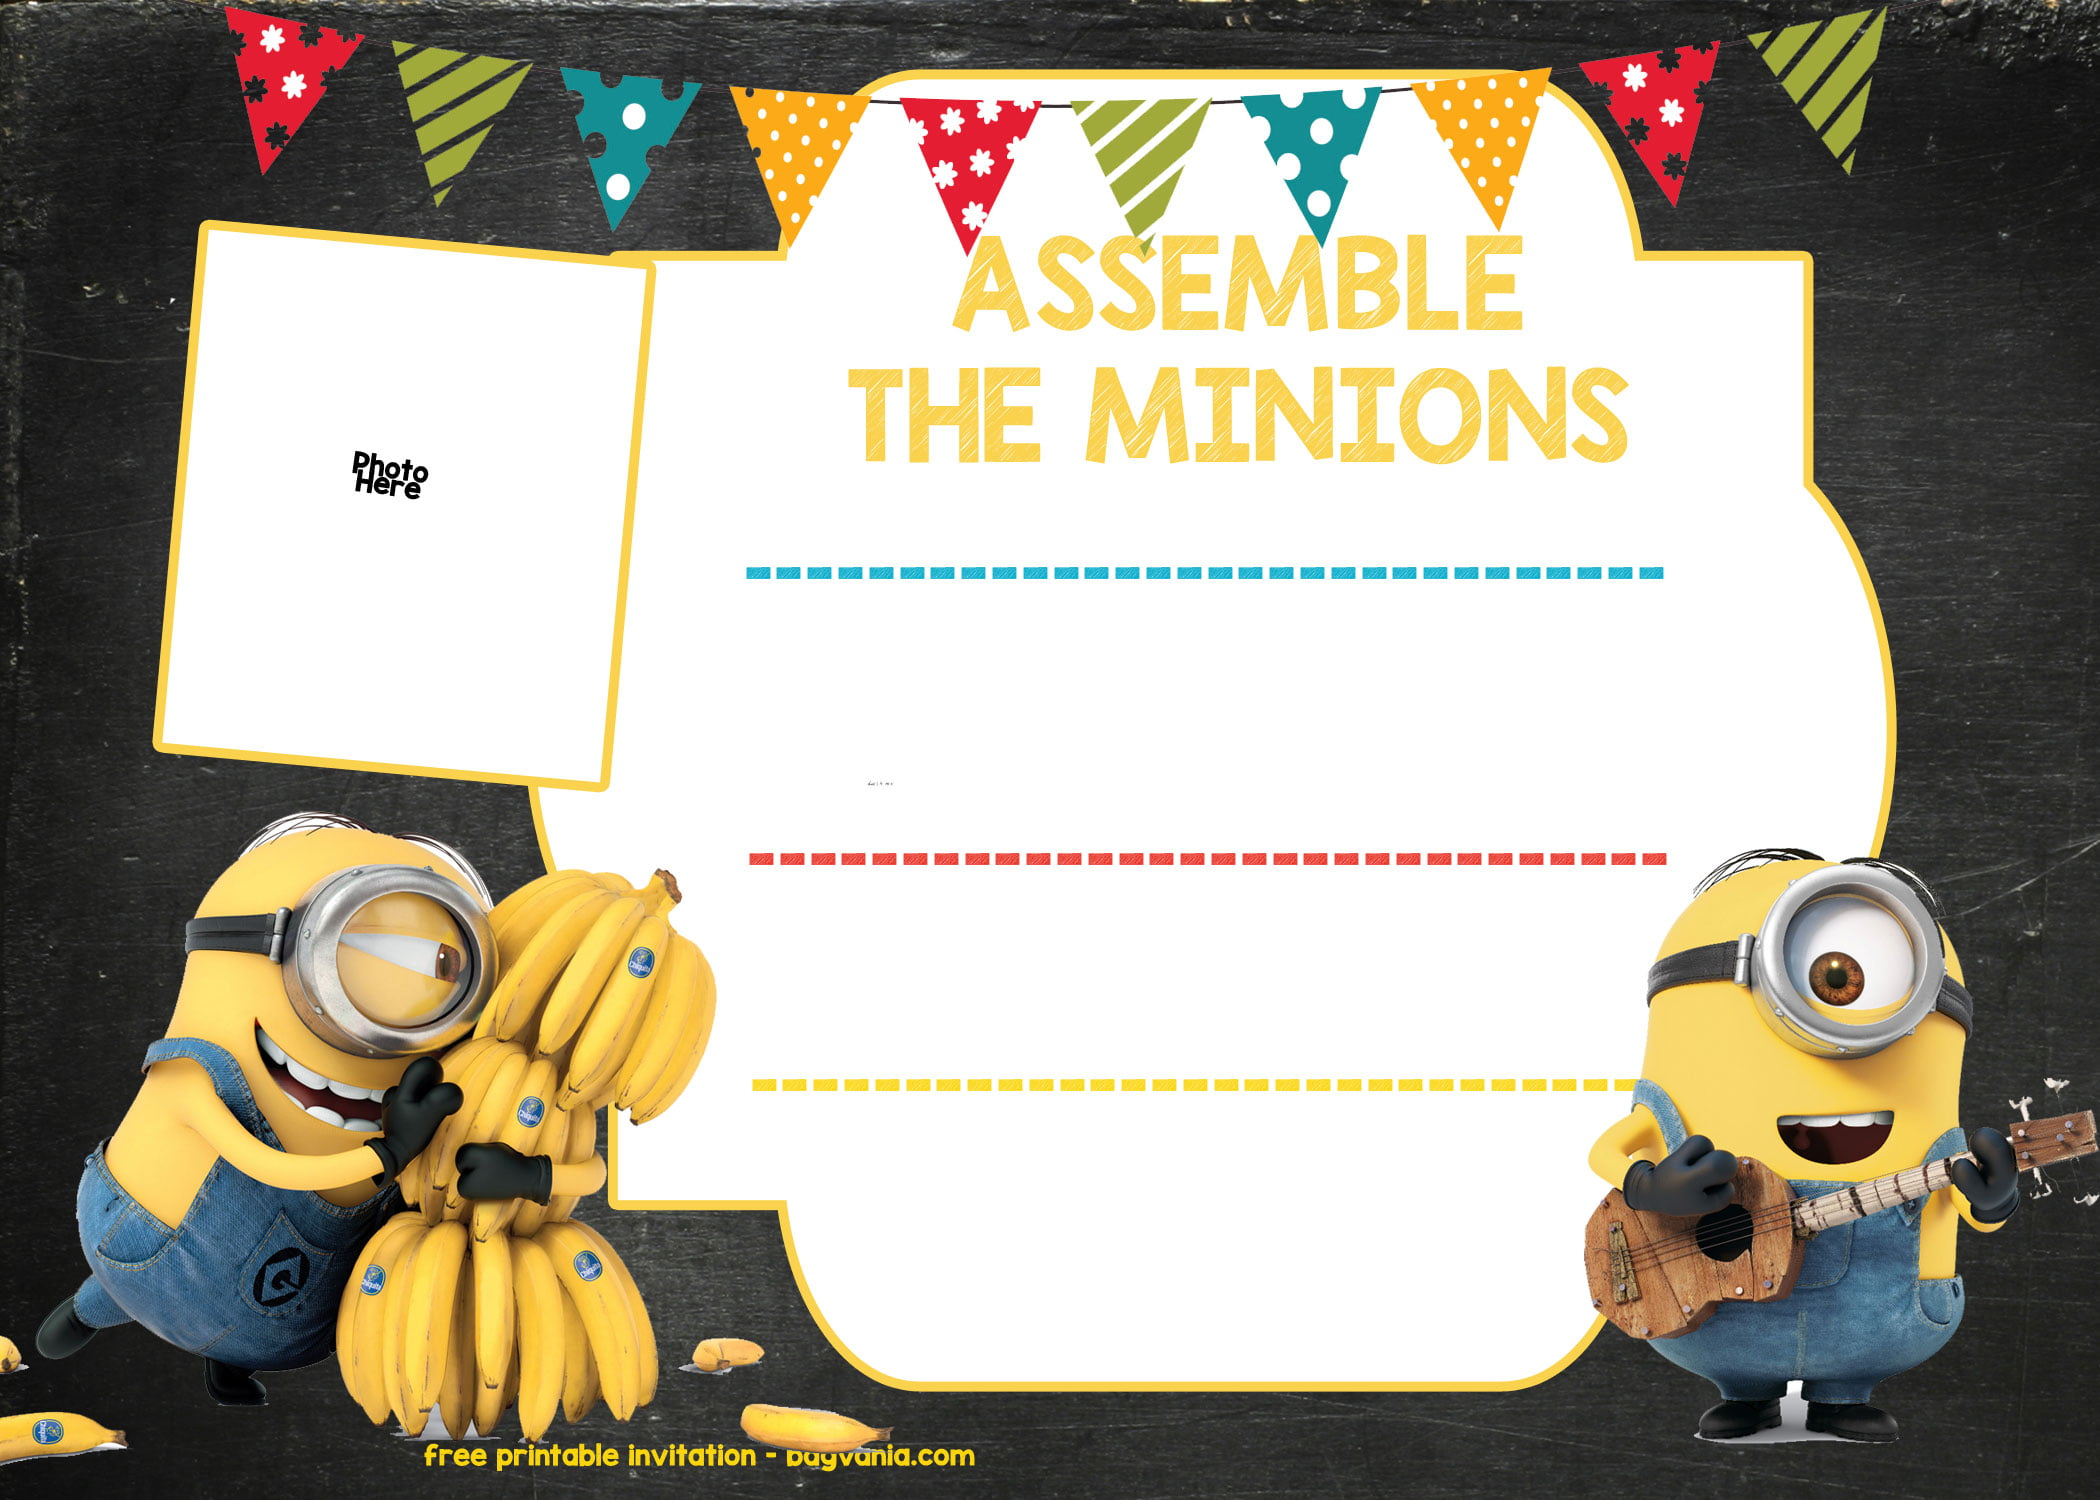 New Wallpaper Hd Boy And Girl Free Printable Minion Birthday Party Invitations Ideas